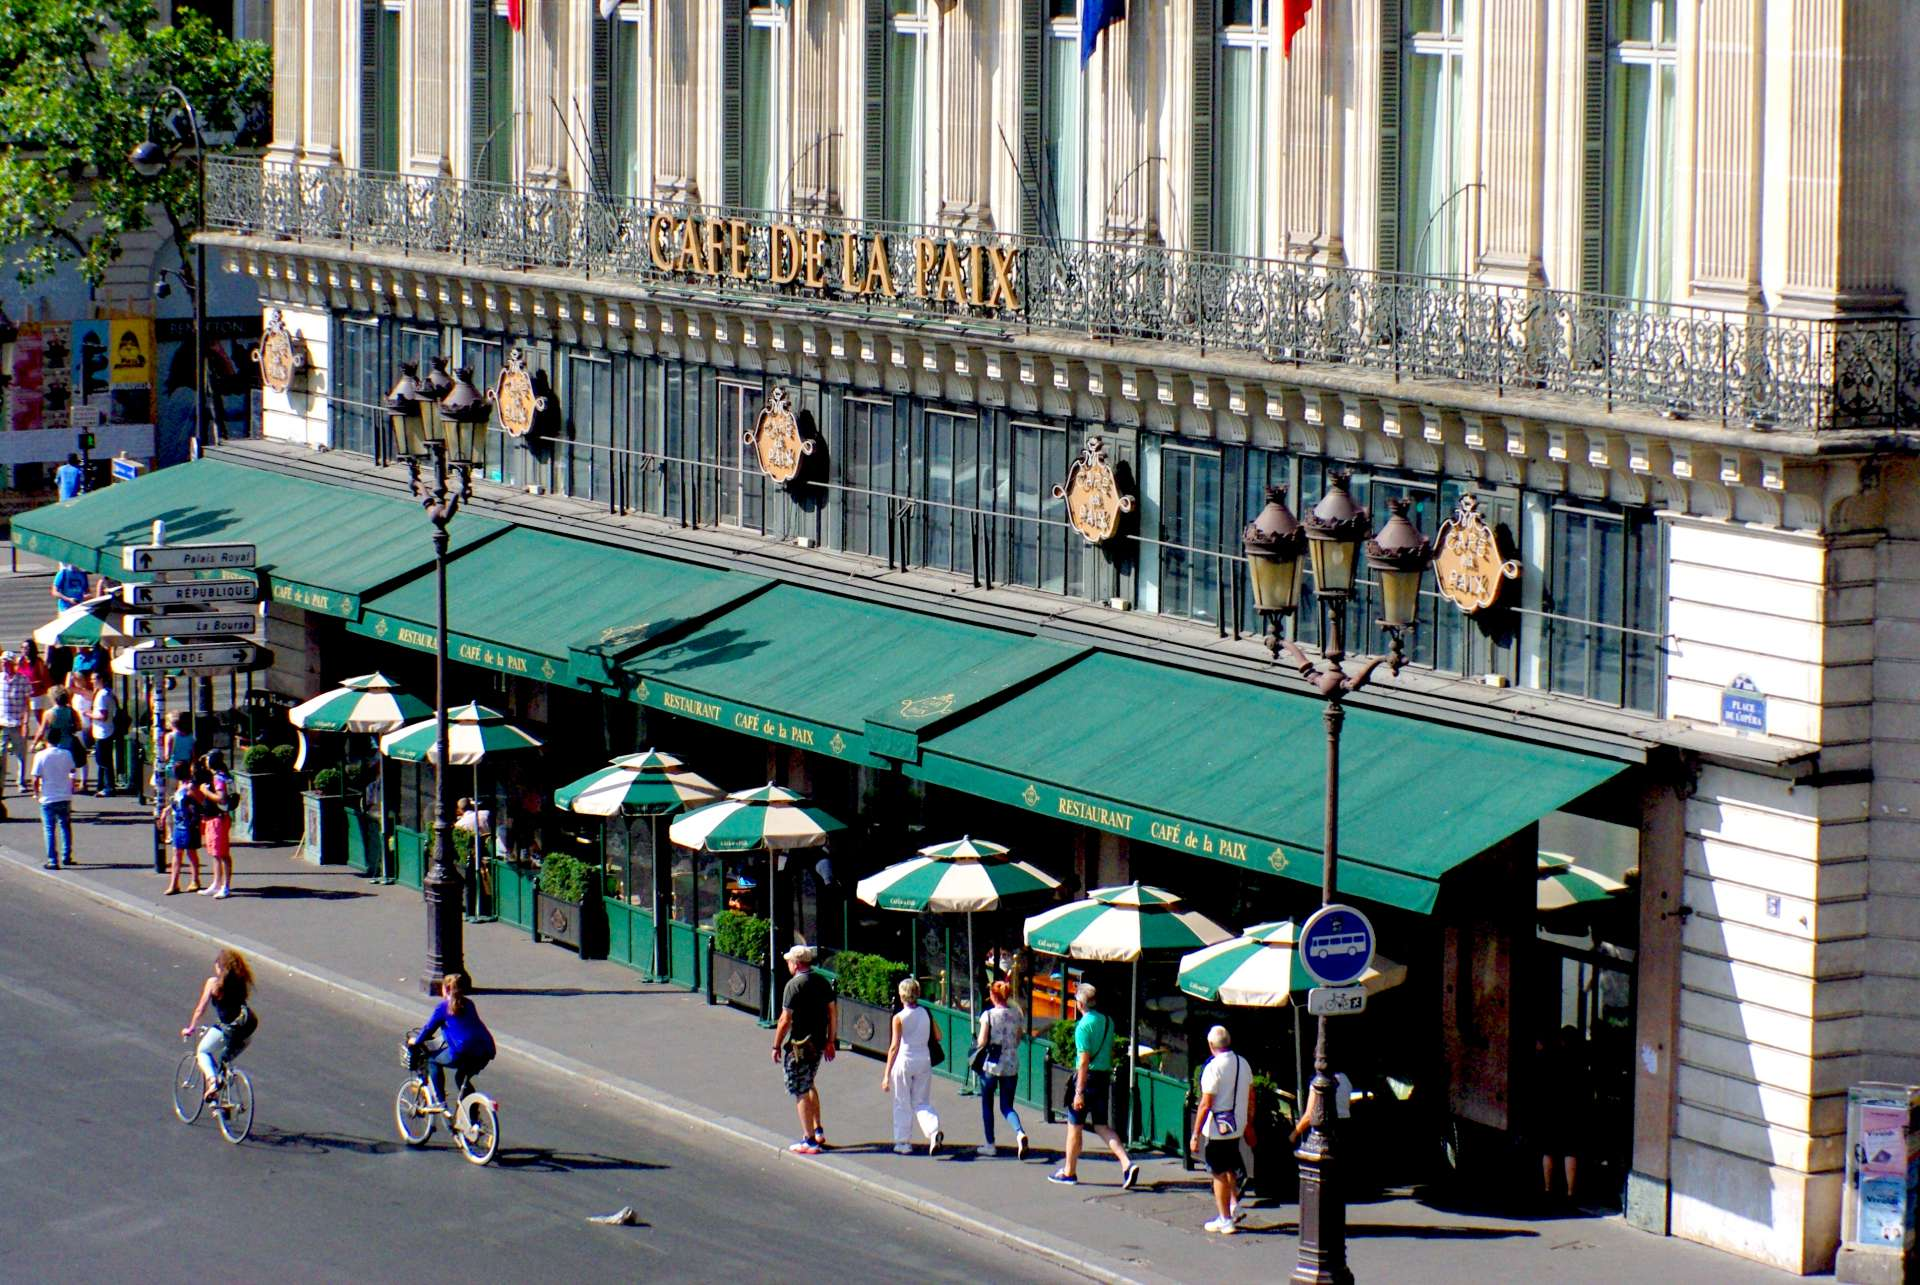 Haussmann's Paris Café de la Paix © French Moments